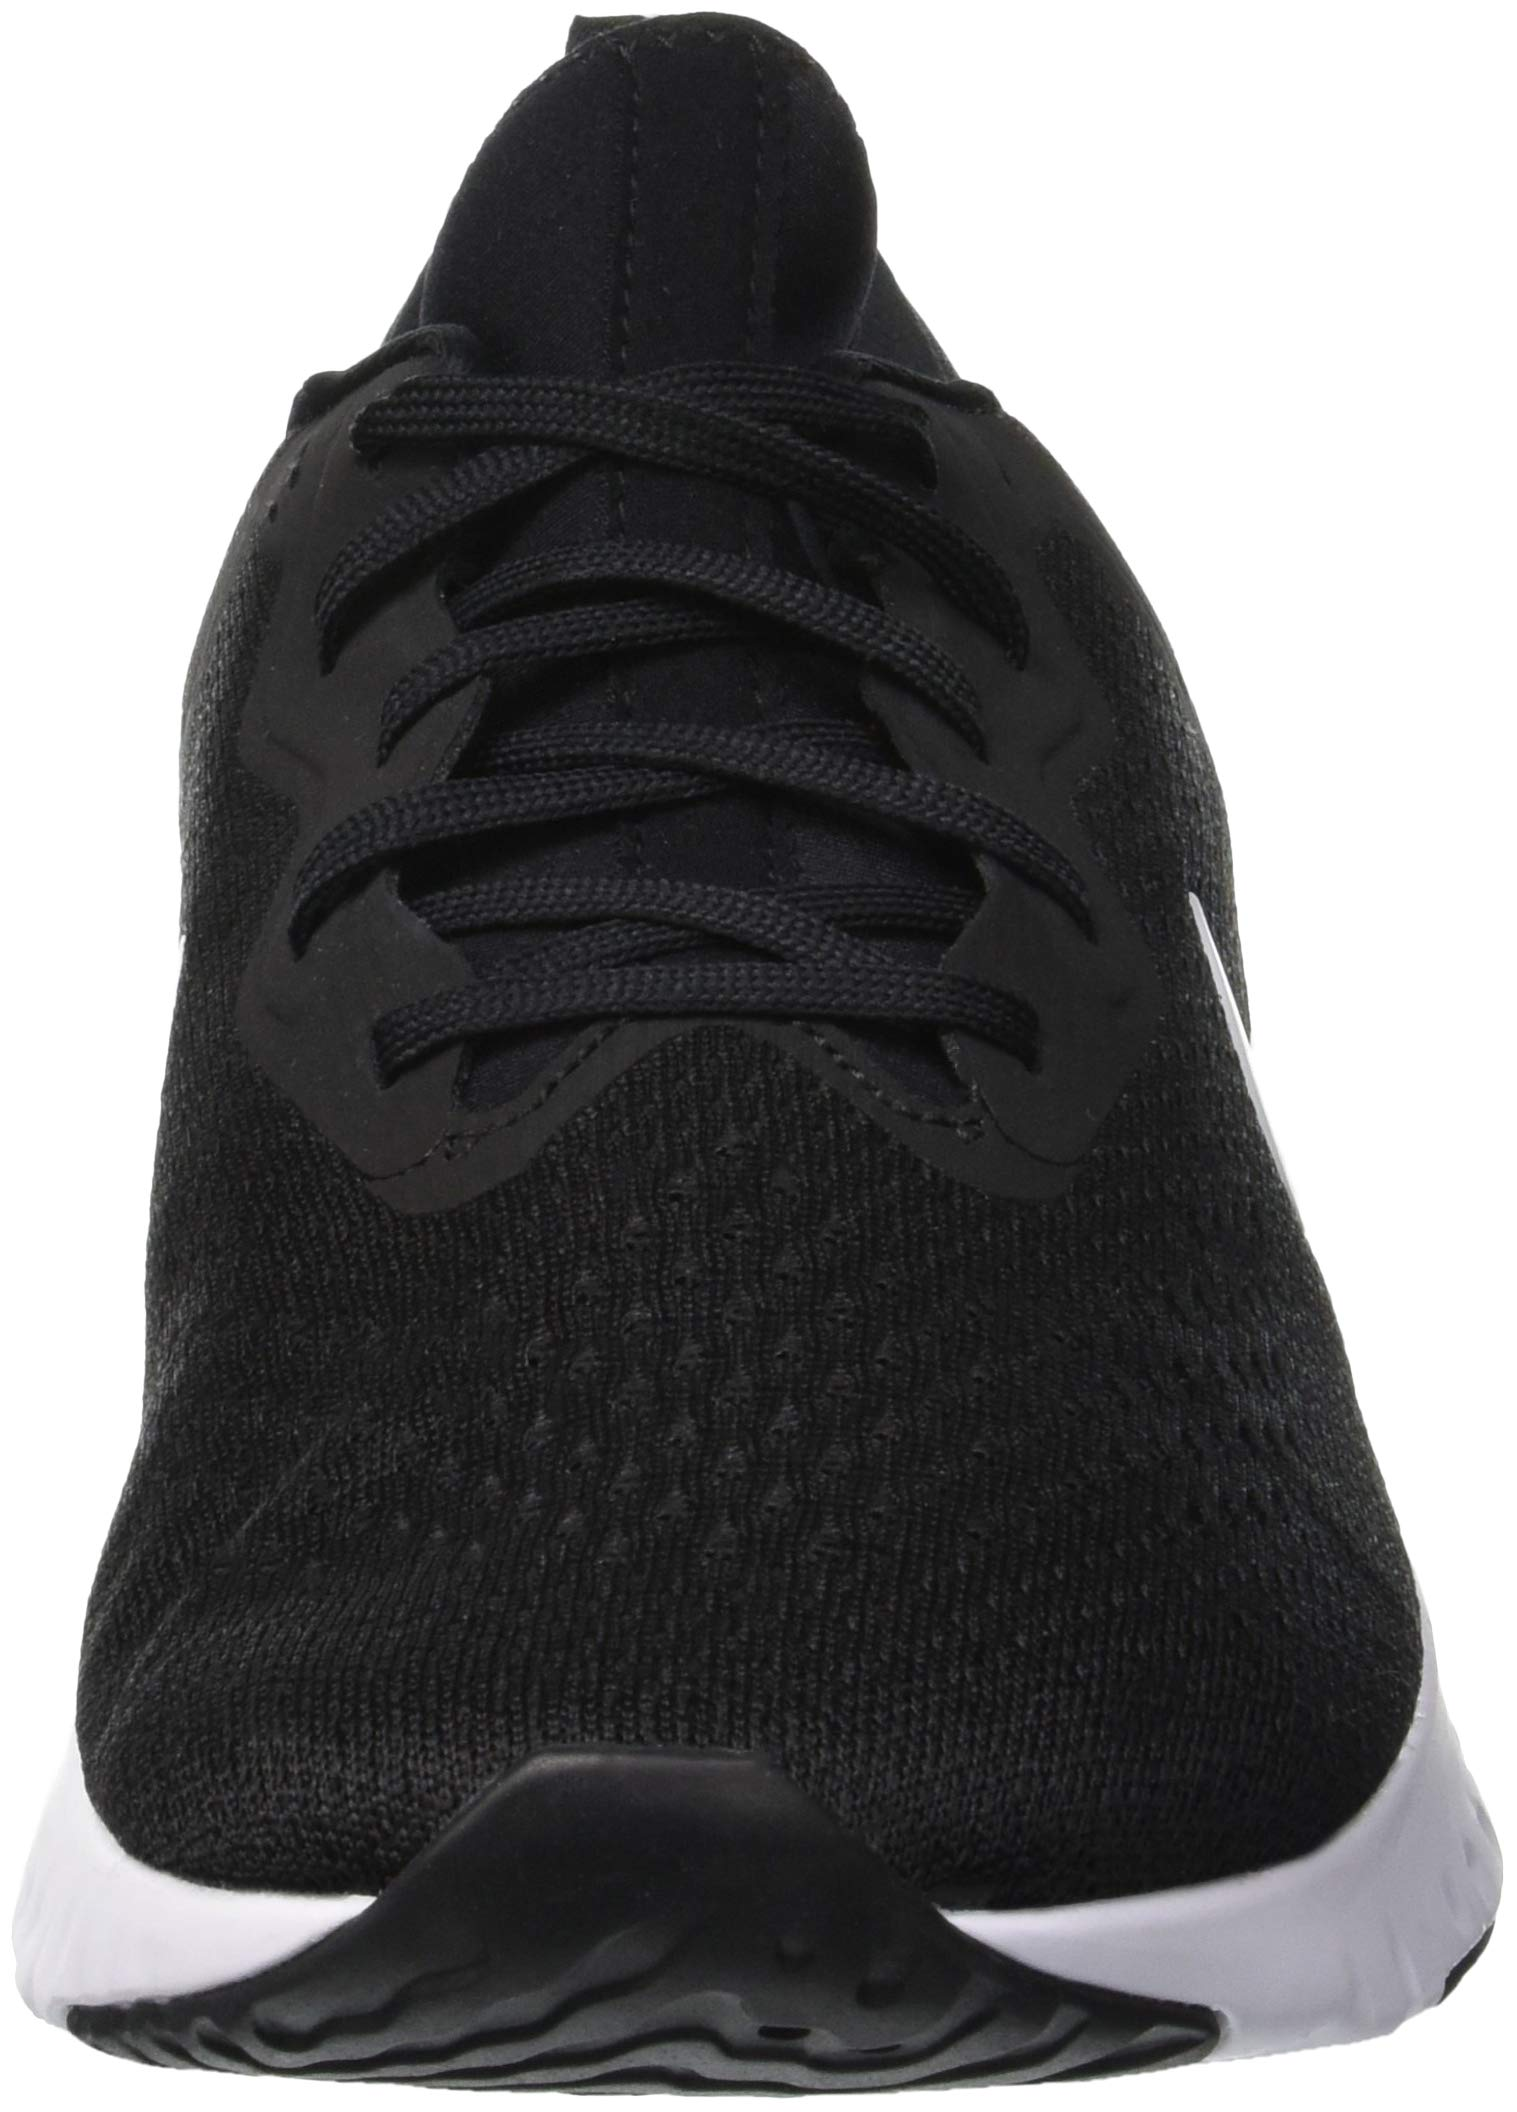 Nike Odyssey React Mens Running Trainers AO9819 Sneakers Shoes (UK 6 US 7 EU 40, Black White Wolf Grey 001) by Nike (Image #4)